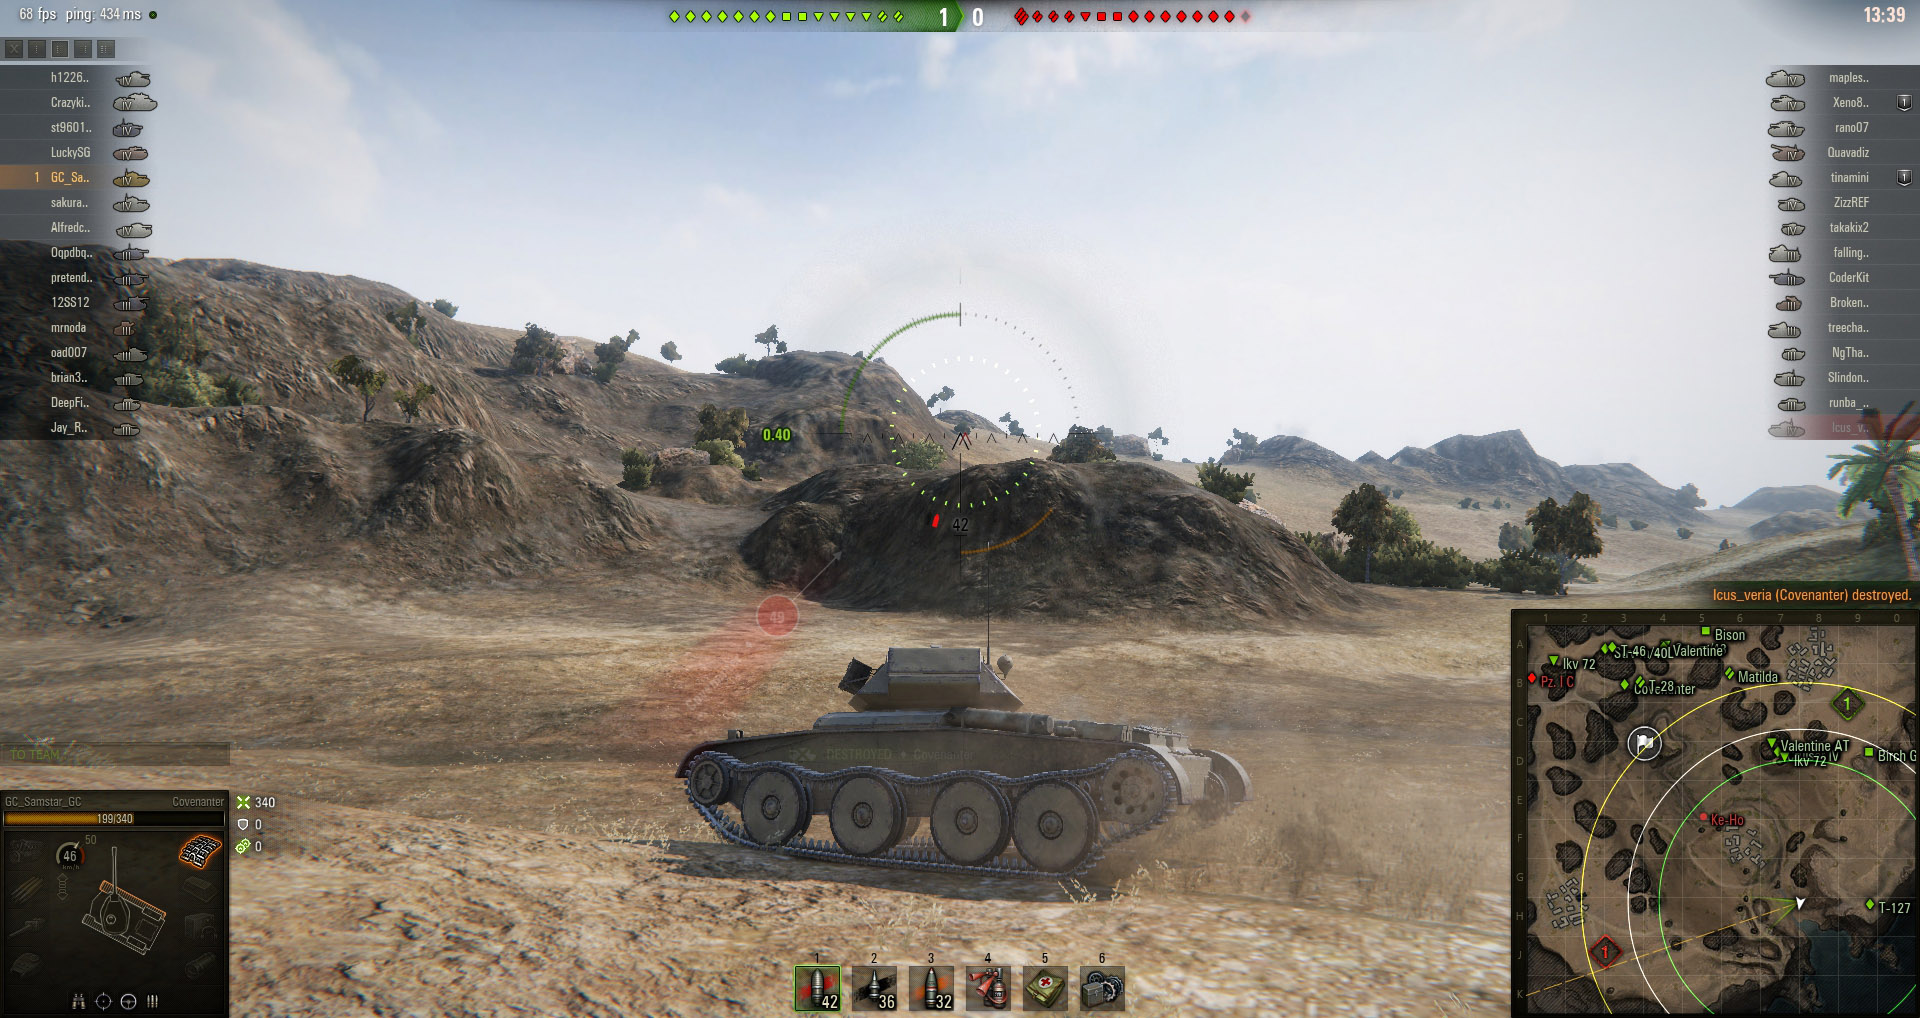 Thankfully, the in-game Covenanter doesn't have the same aversion to desert combat as its real-world equivalent.